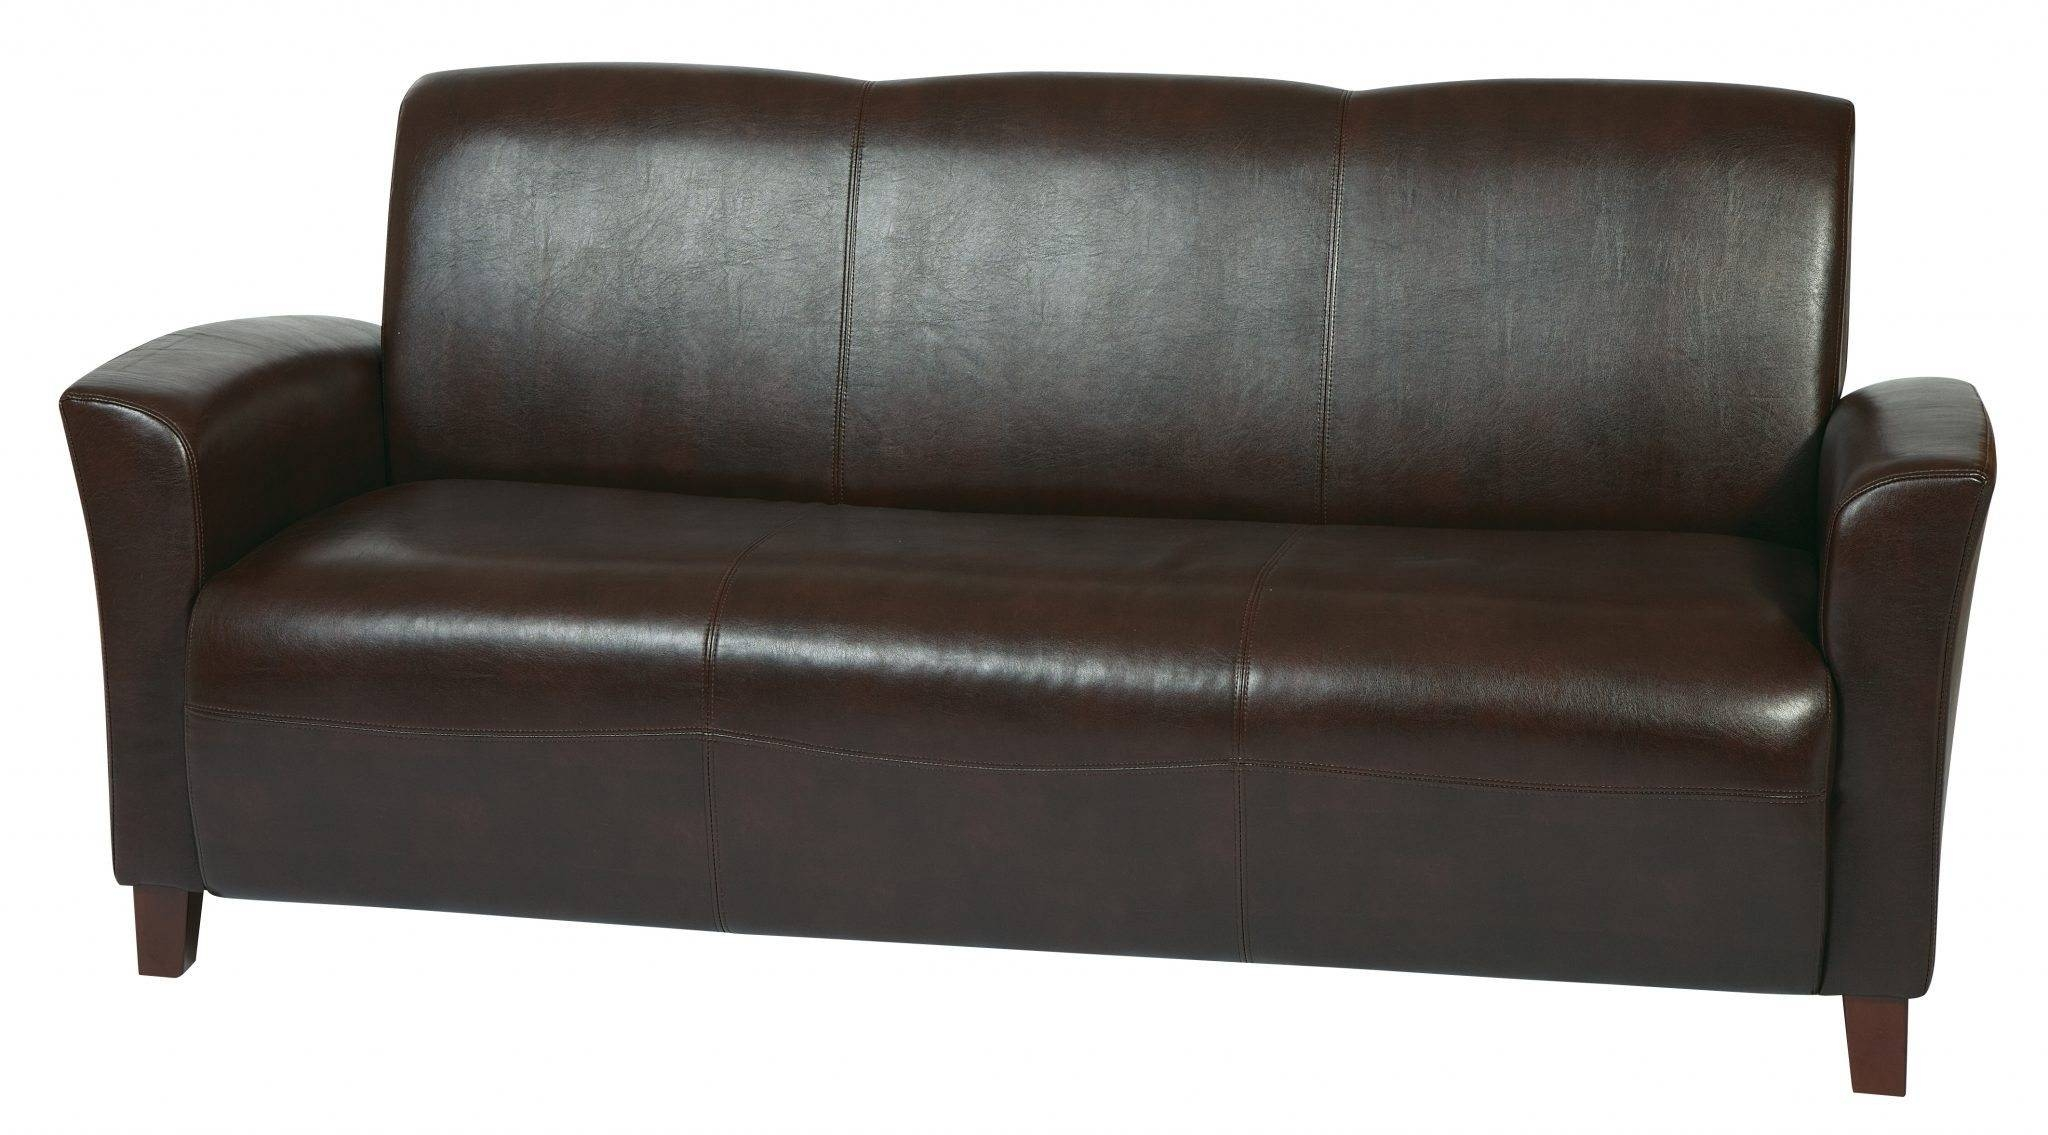 Bomber Jacket Leather Sofa 46 With Bomber Jacket Leather Sofa throughout Bomber Jacket Leather Sofas (Image 3 of 15)